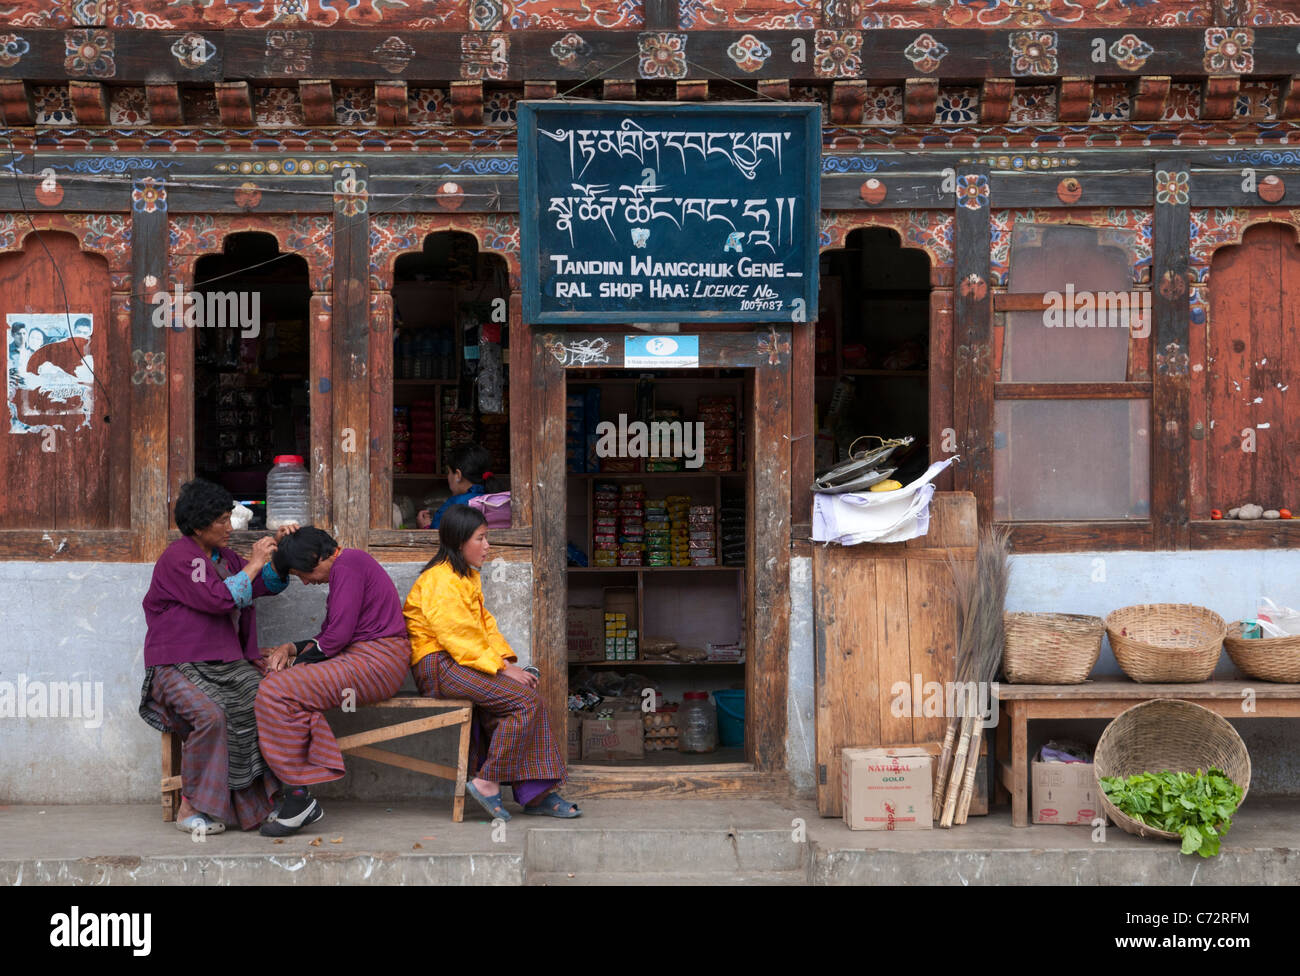 group shot of people in front of traditional grocery shop. Haa. bhutan - Stock Image